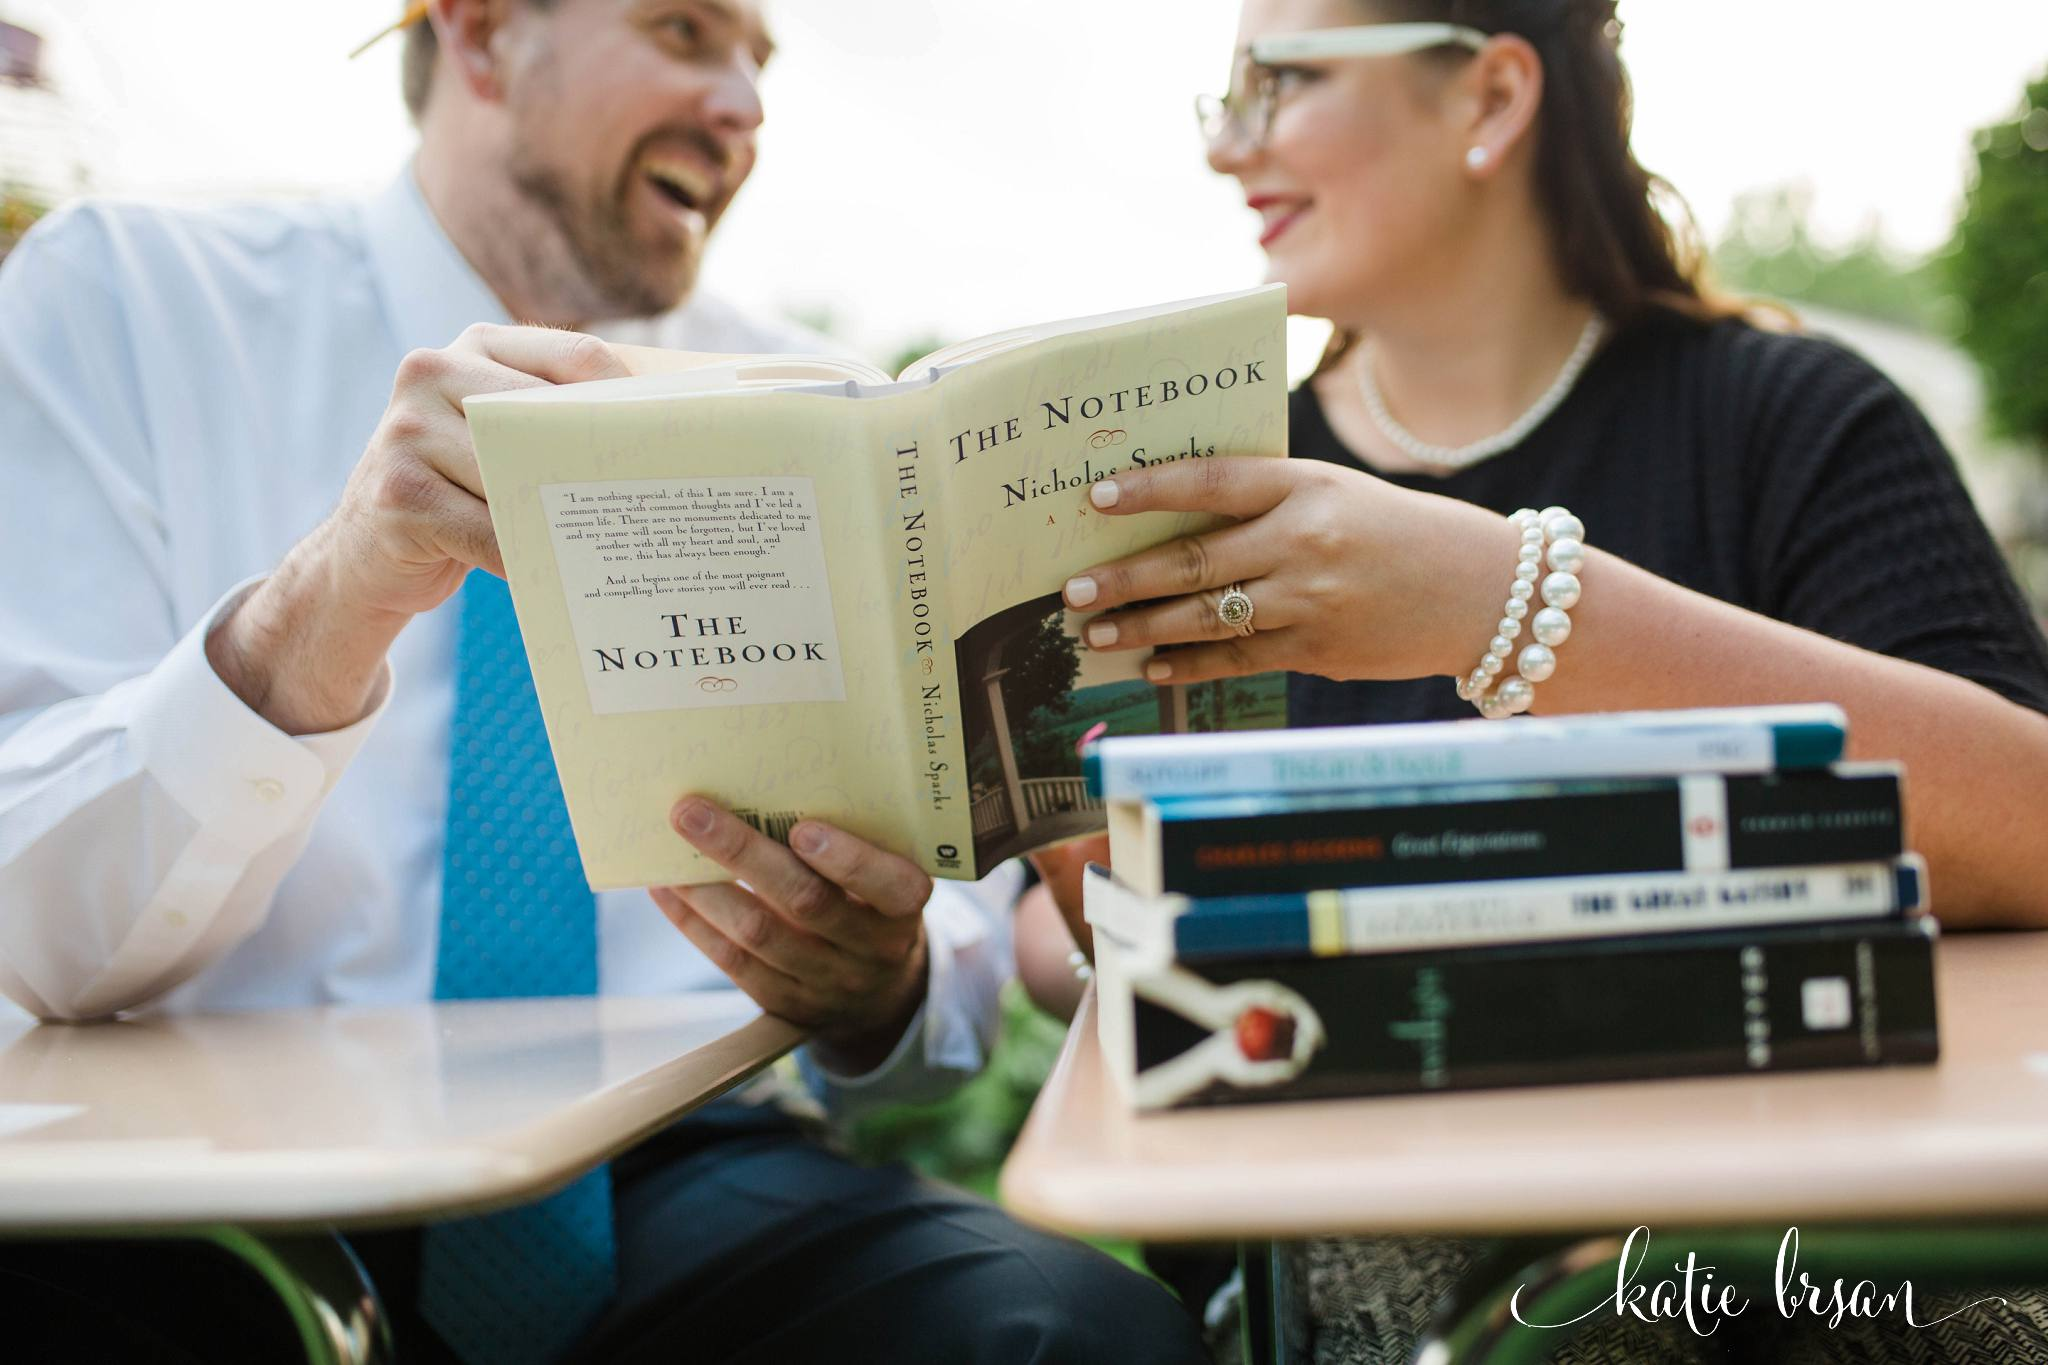 KatieBrsan-HomerGlen-NewLenox-EngagementSession-HadleyValley-TeacherEngagementSession-ChicagoWeddingPhotographer_0580.jpg